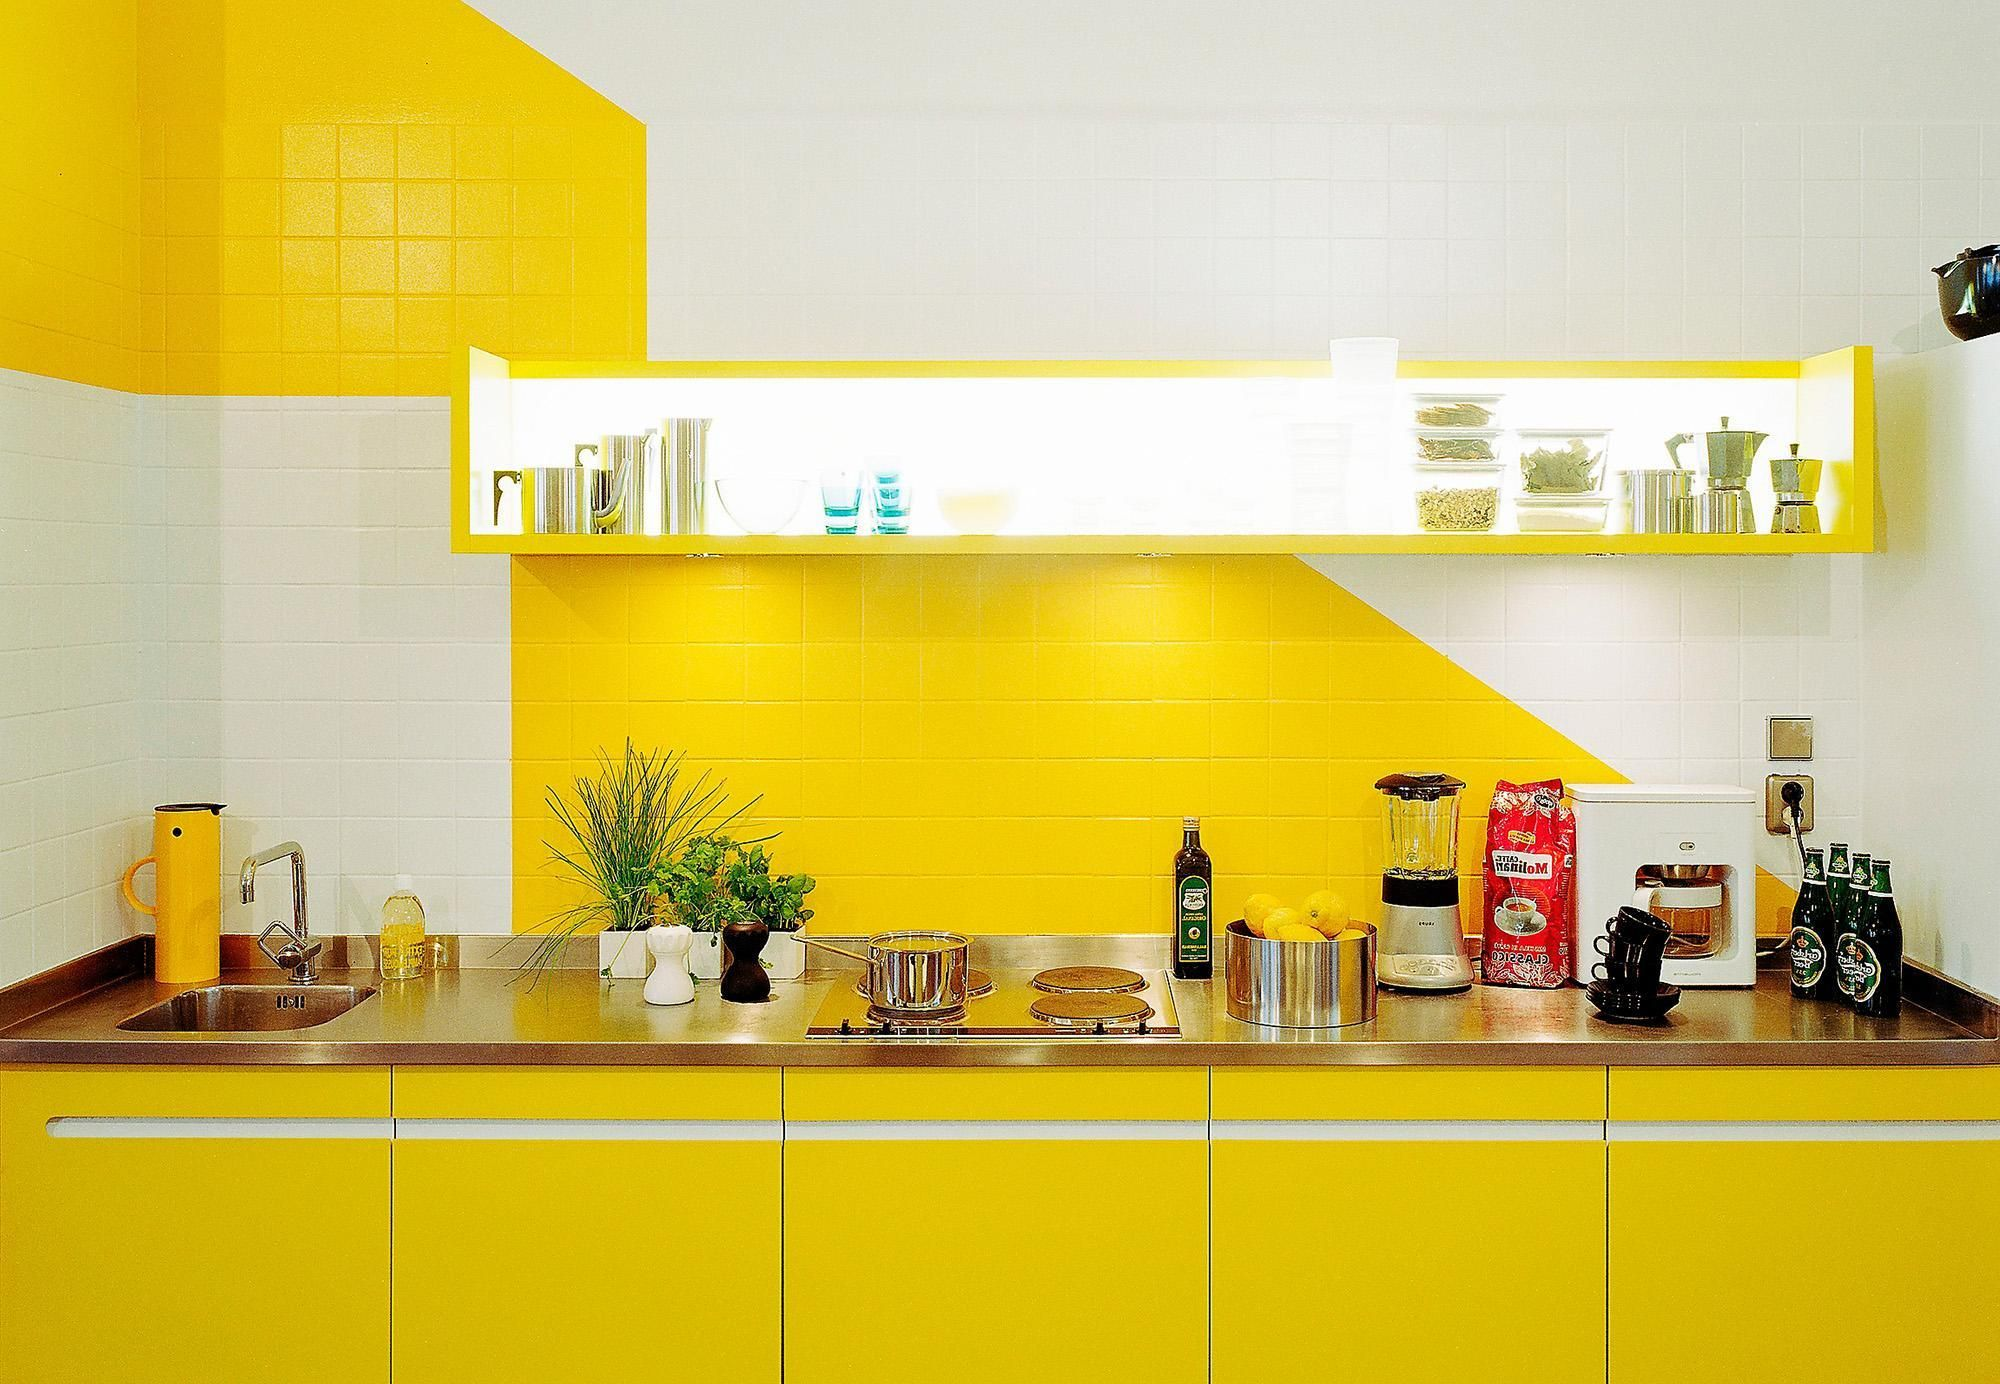 Attractive Cool Bright Kitchen Design With Yellow Color And White Kitchen Wall Tile  Plus Cabinet Shelves Mounted On Wall Bright And Colorful Kitchen Design  Ideas With ... Part 12